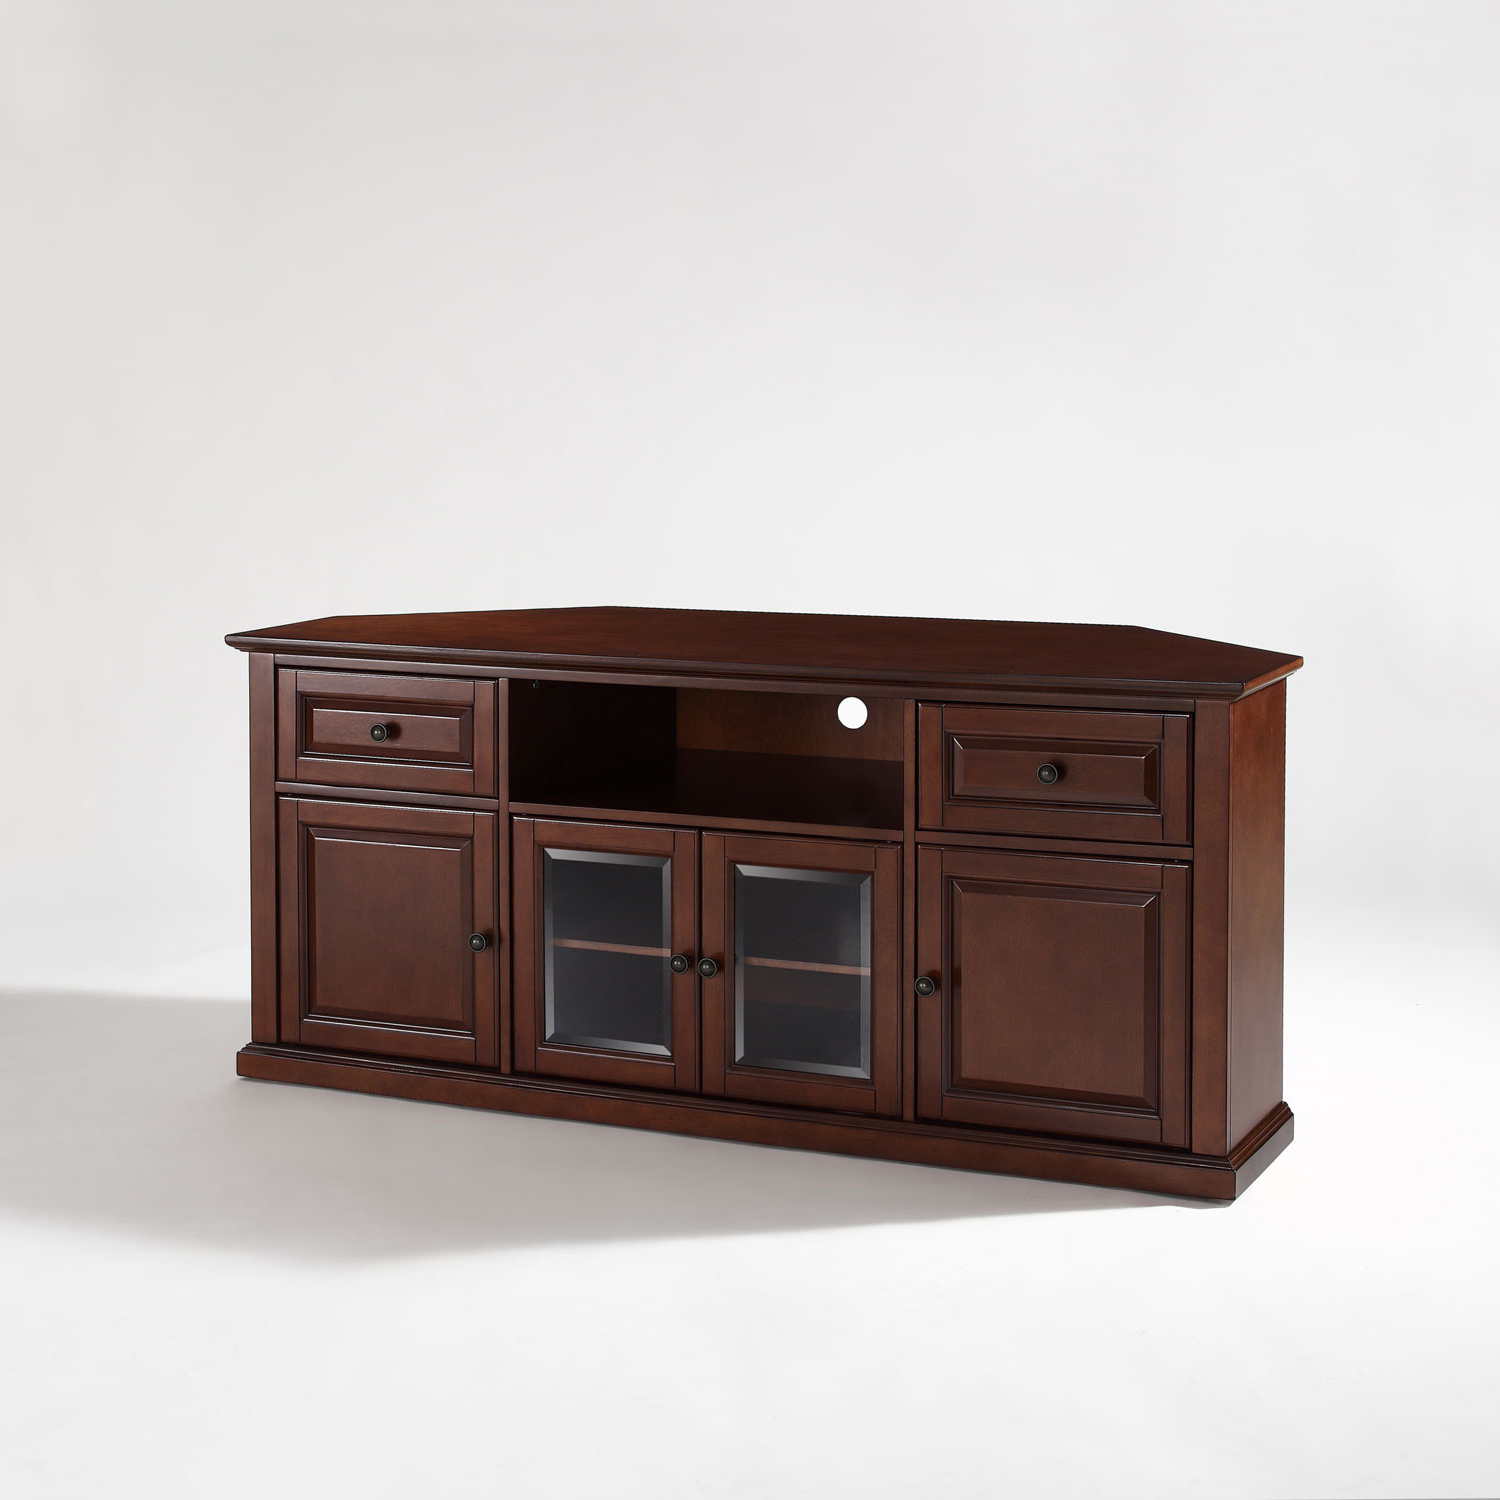 Preferred Corner Tv Stand In Crosley Furniture Inch Vintage Mahogany Plans With Regard To Mahogany Corner Tv Stands (View 15 of 20)